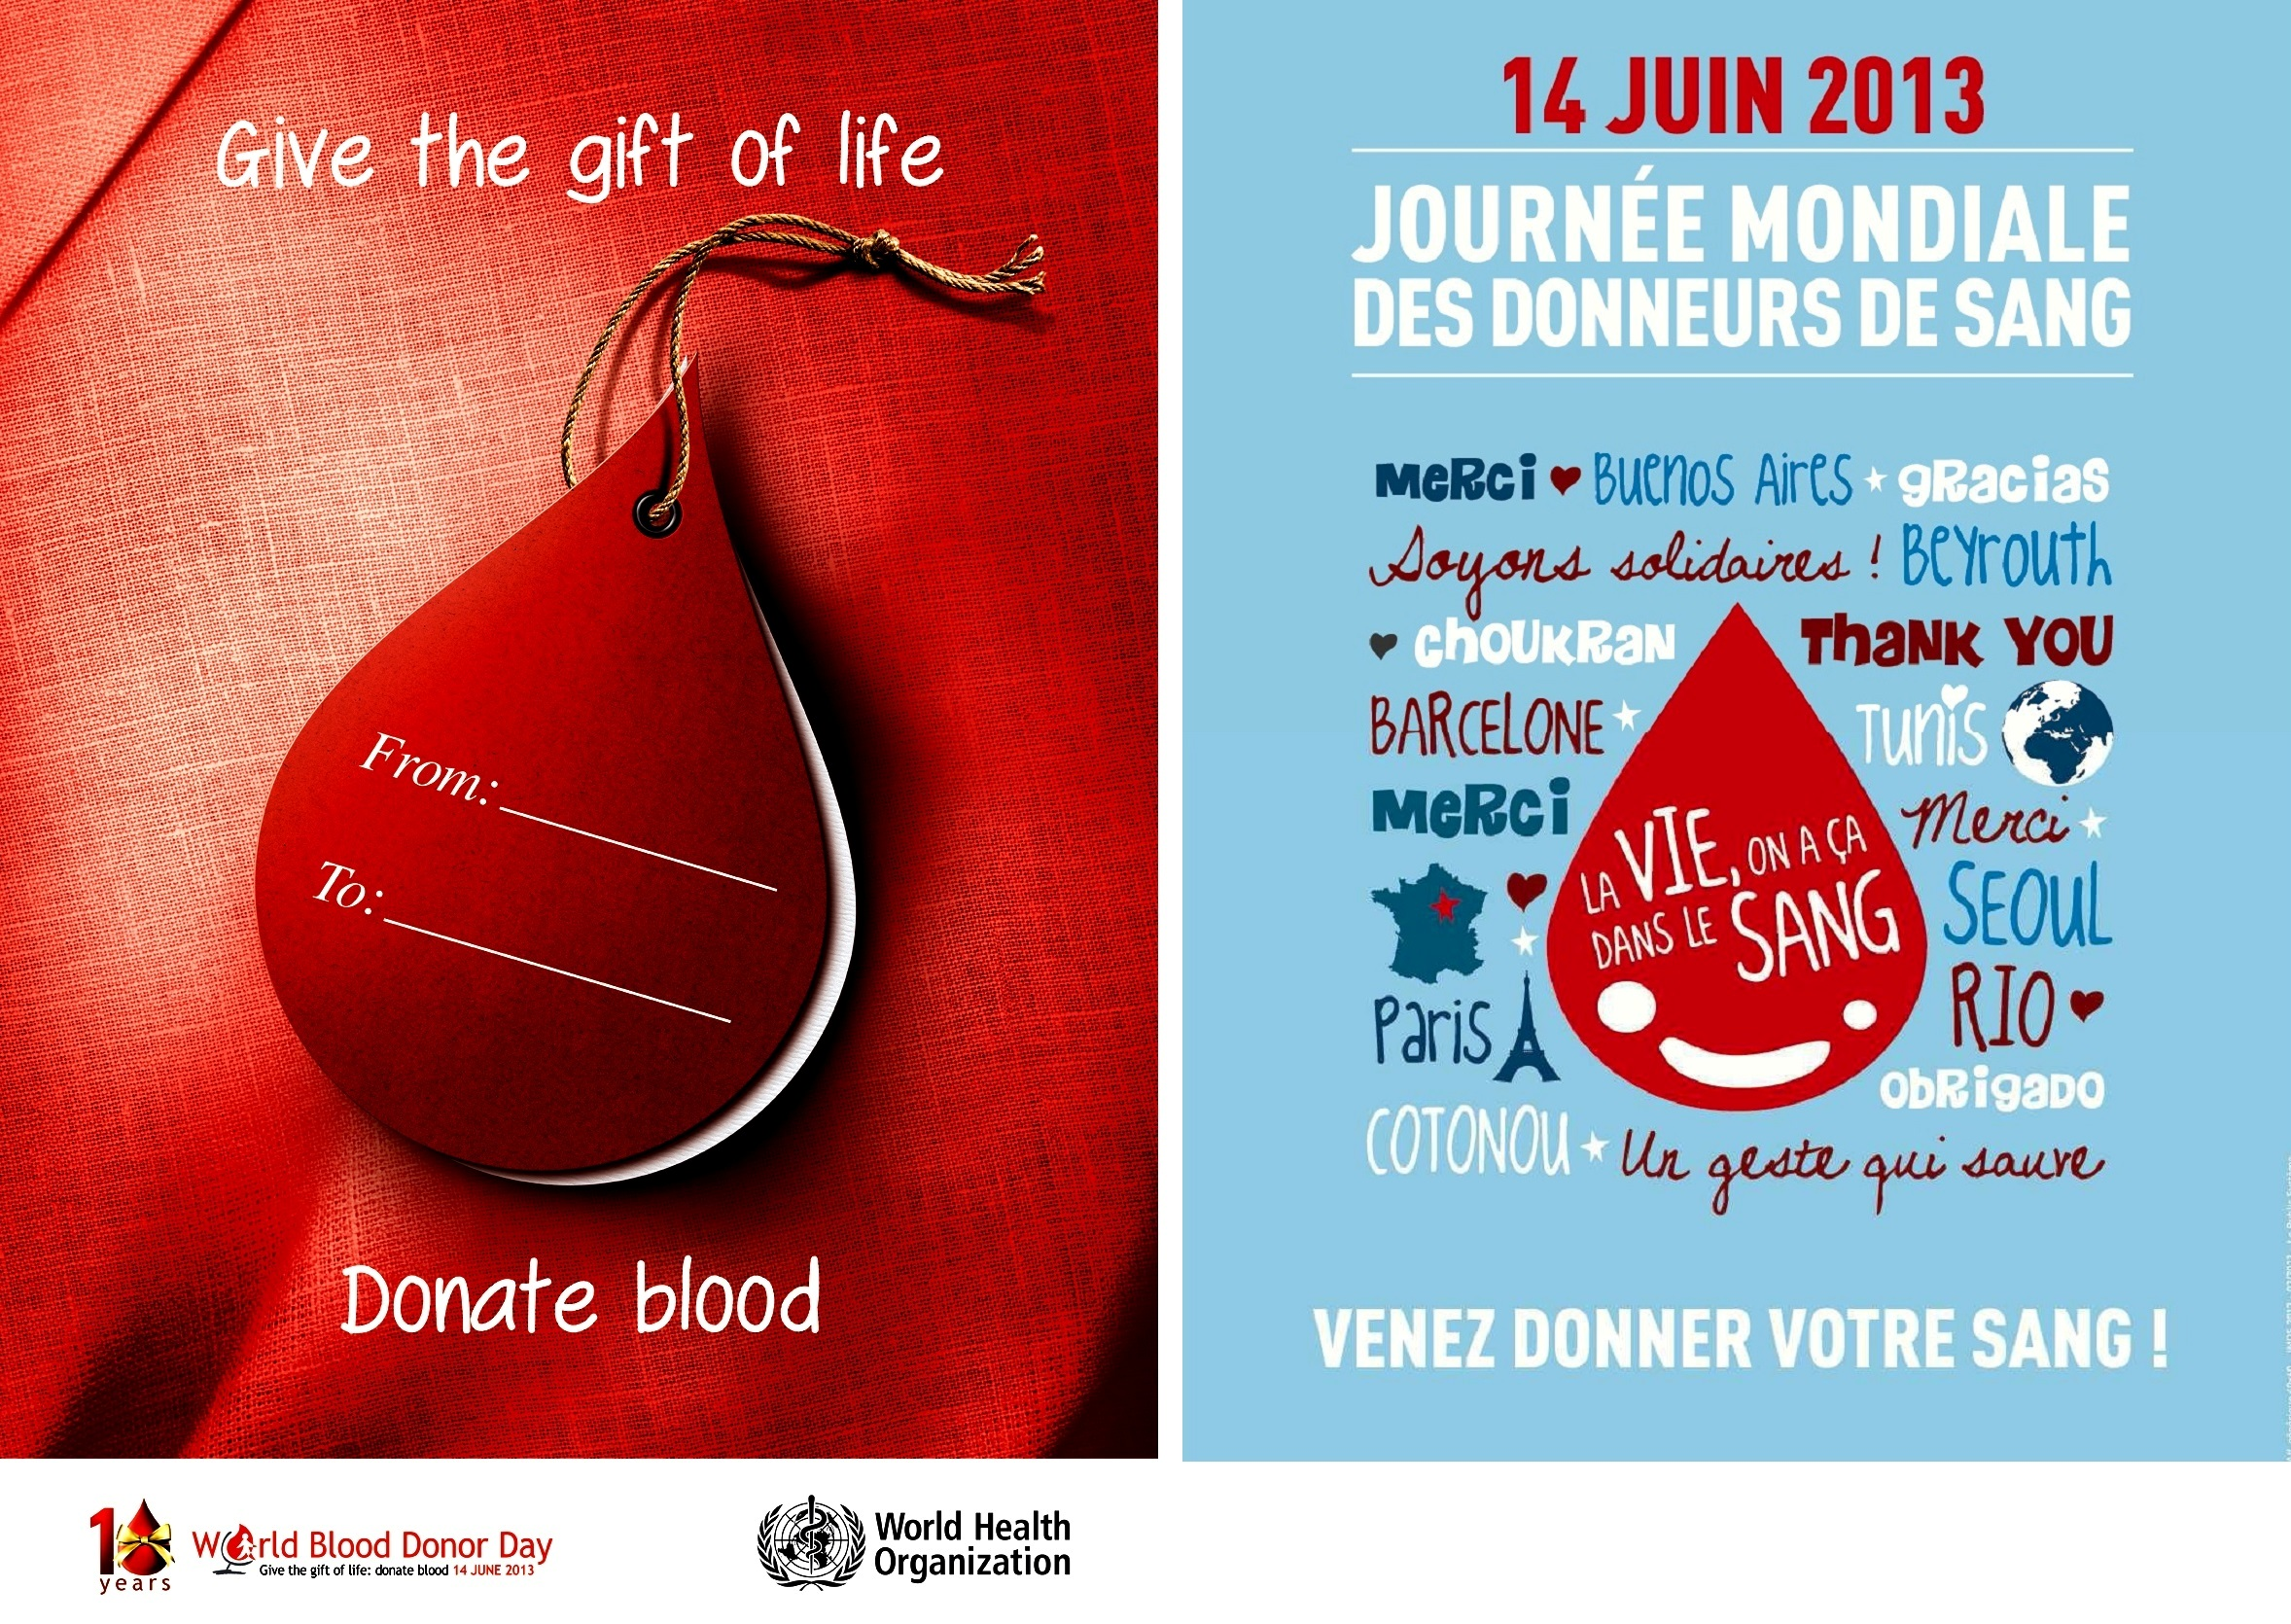 despite cancer beyond cancer stories of strength and struggles the focus for the 2013 campaign the 10th anniversary of world blood donor day is blood donation as a gift that saves lives who encourages all countries